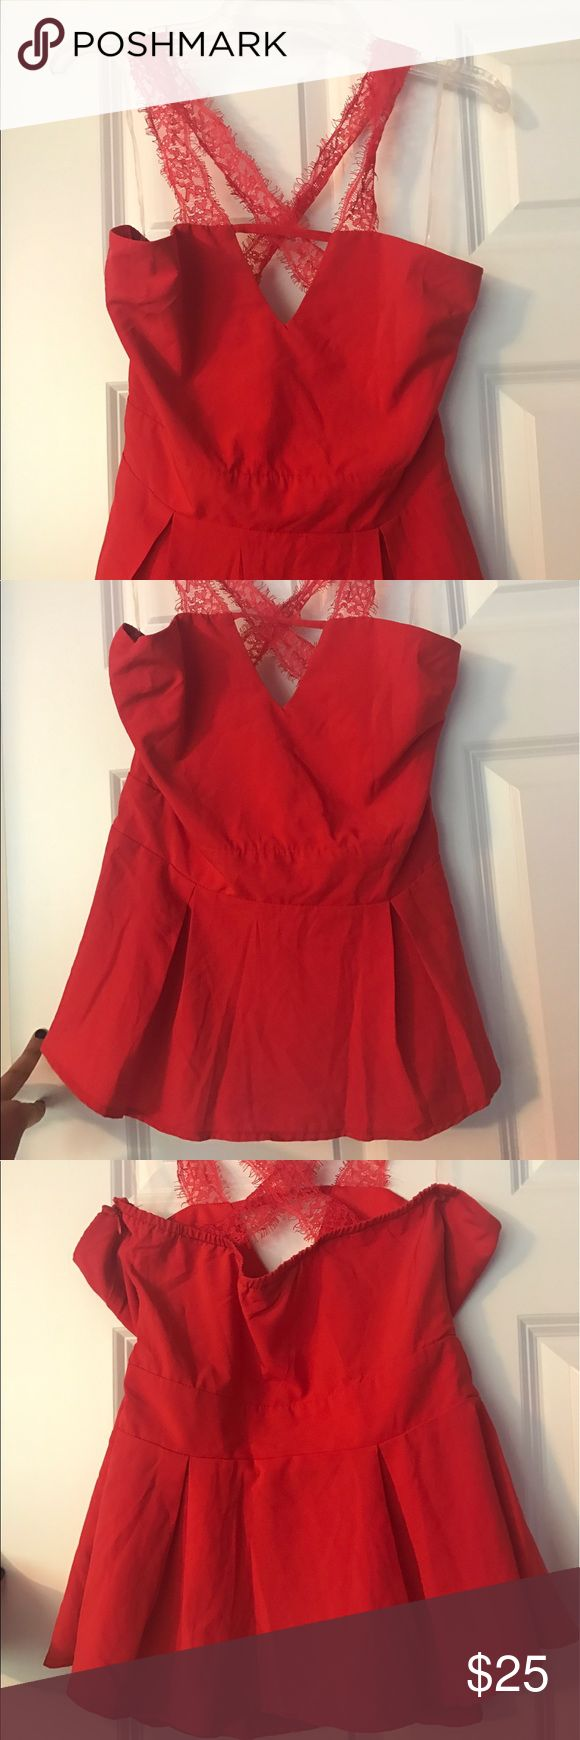 Red peplum top with lace straps NEVER BEEN WORN Tobi red peplum top with lace straps that cross in the back.. brand new never been worn Tobi Tops